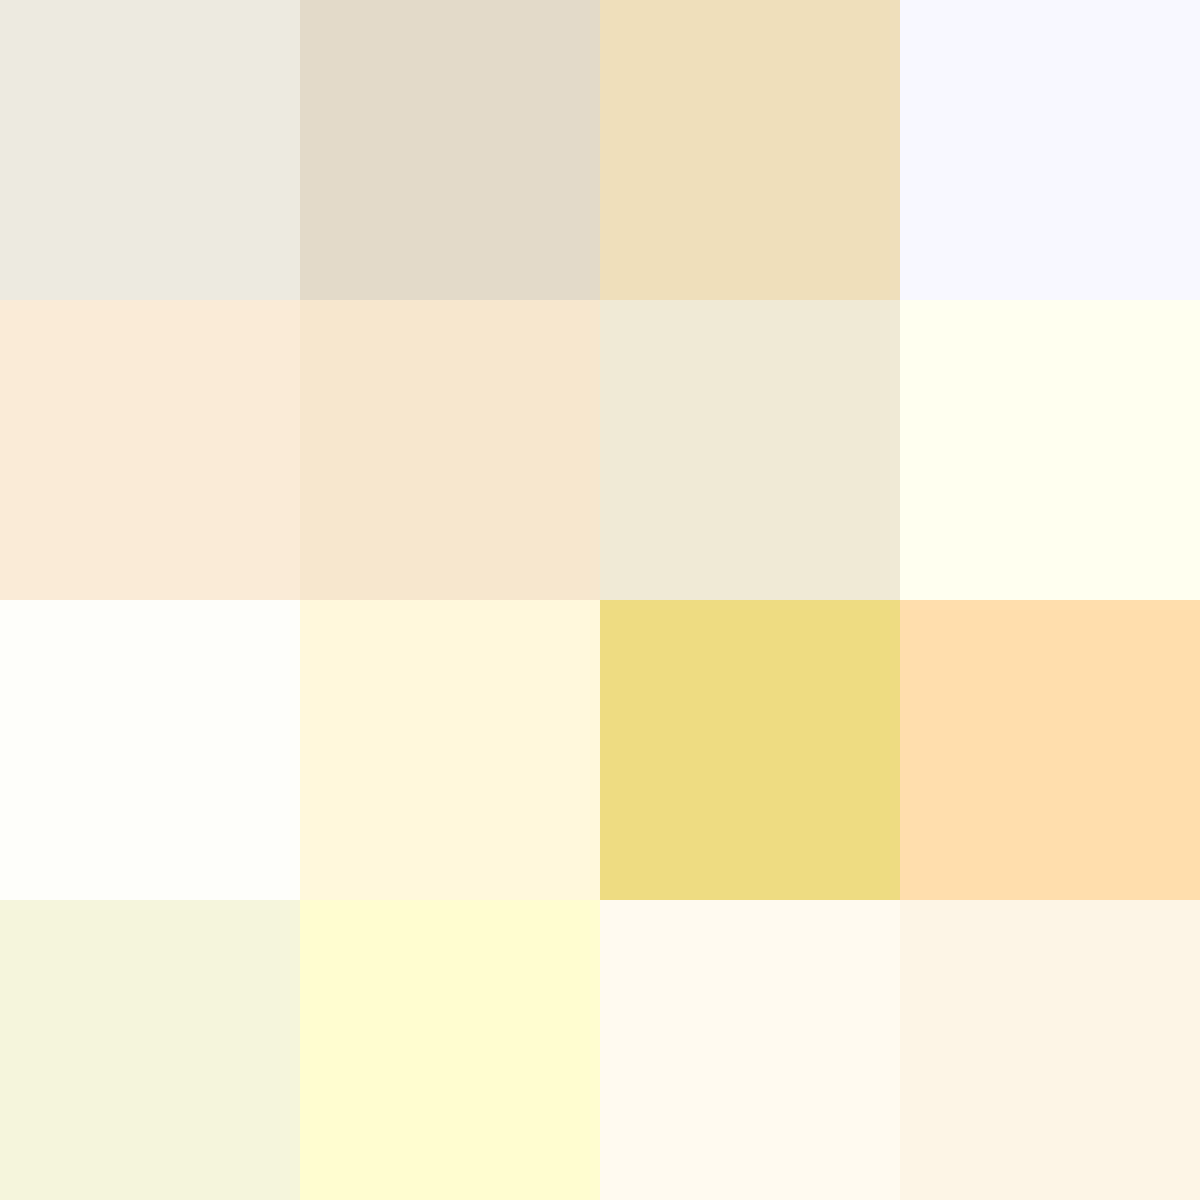 Shades Of White Hex Rgb Cmyk Color Codes